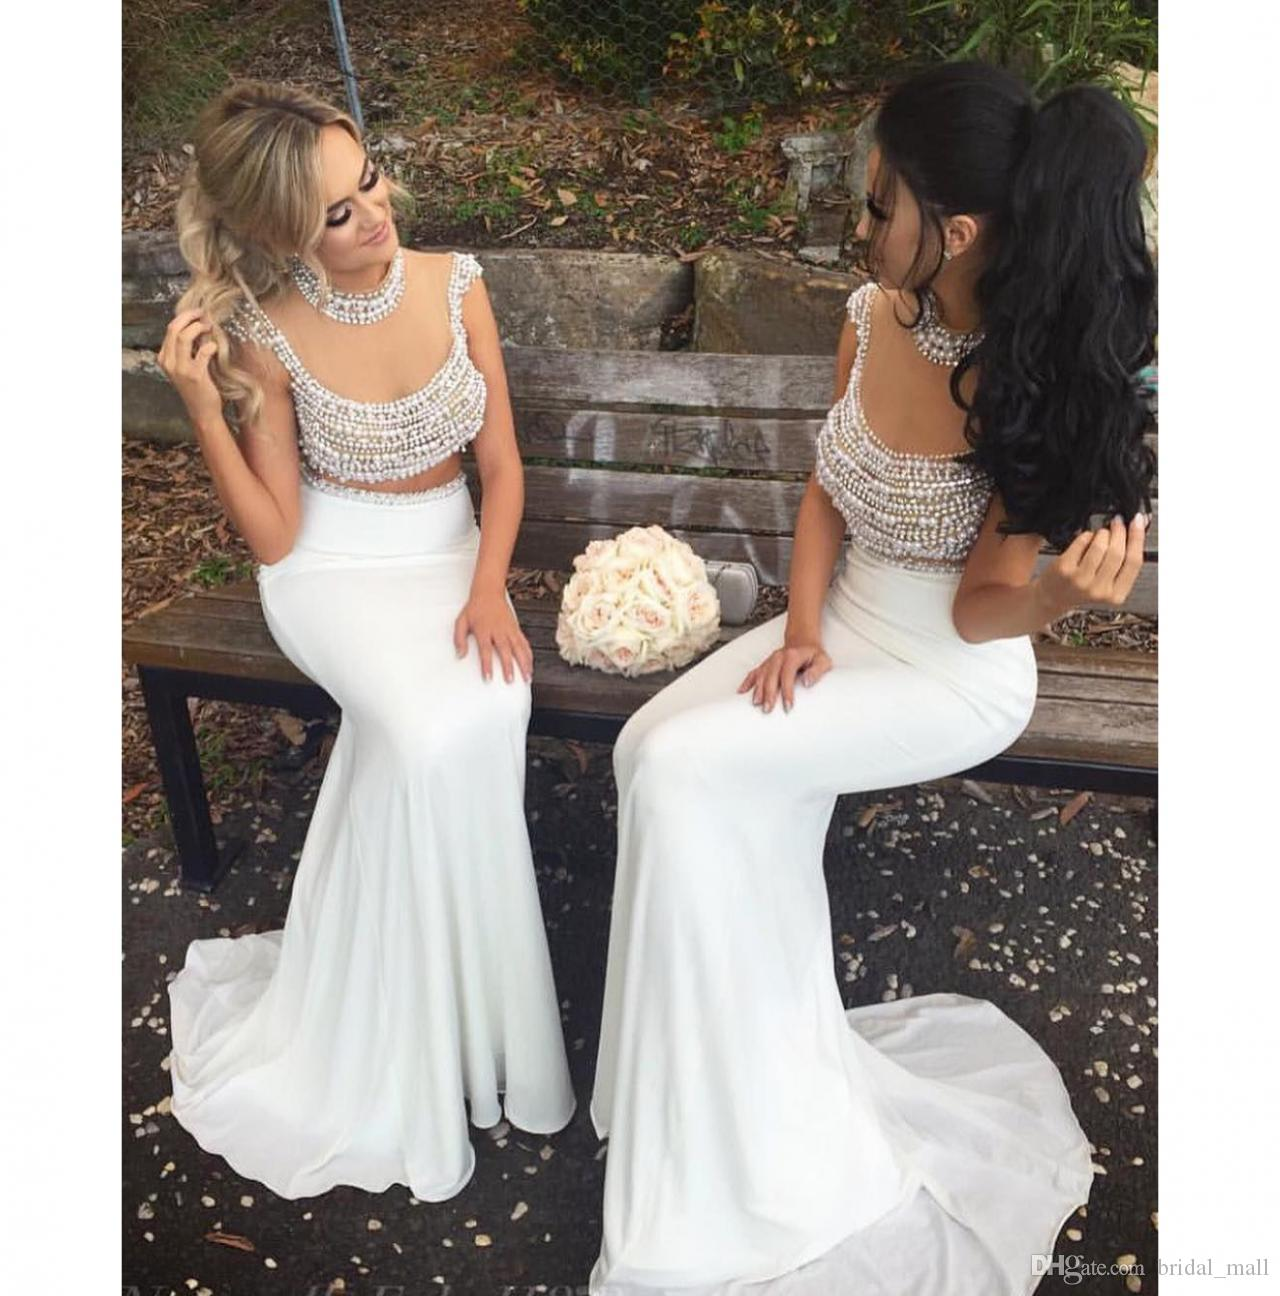 Trendy two pieces bridesmaid dresses high neck mermaid prom dress trendy two pieces bridesmaid dresses high neck mermaid prom dress pearls long maid of honor dress party gown girls bridesmaid dress gorgeous bridesmaid ombrellifo Gallery